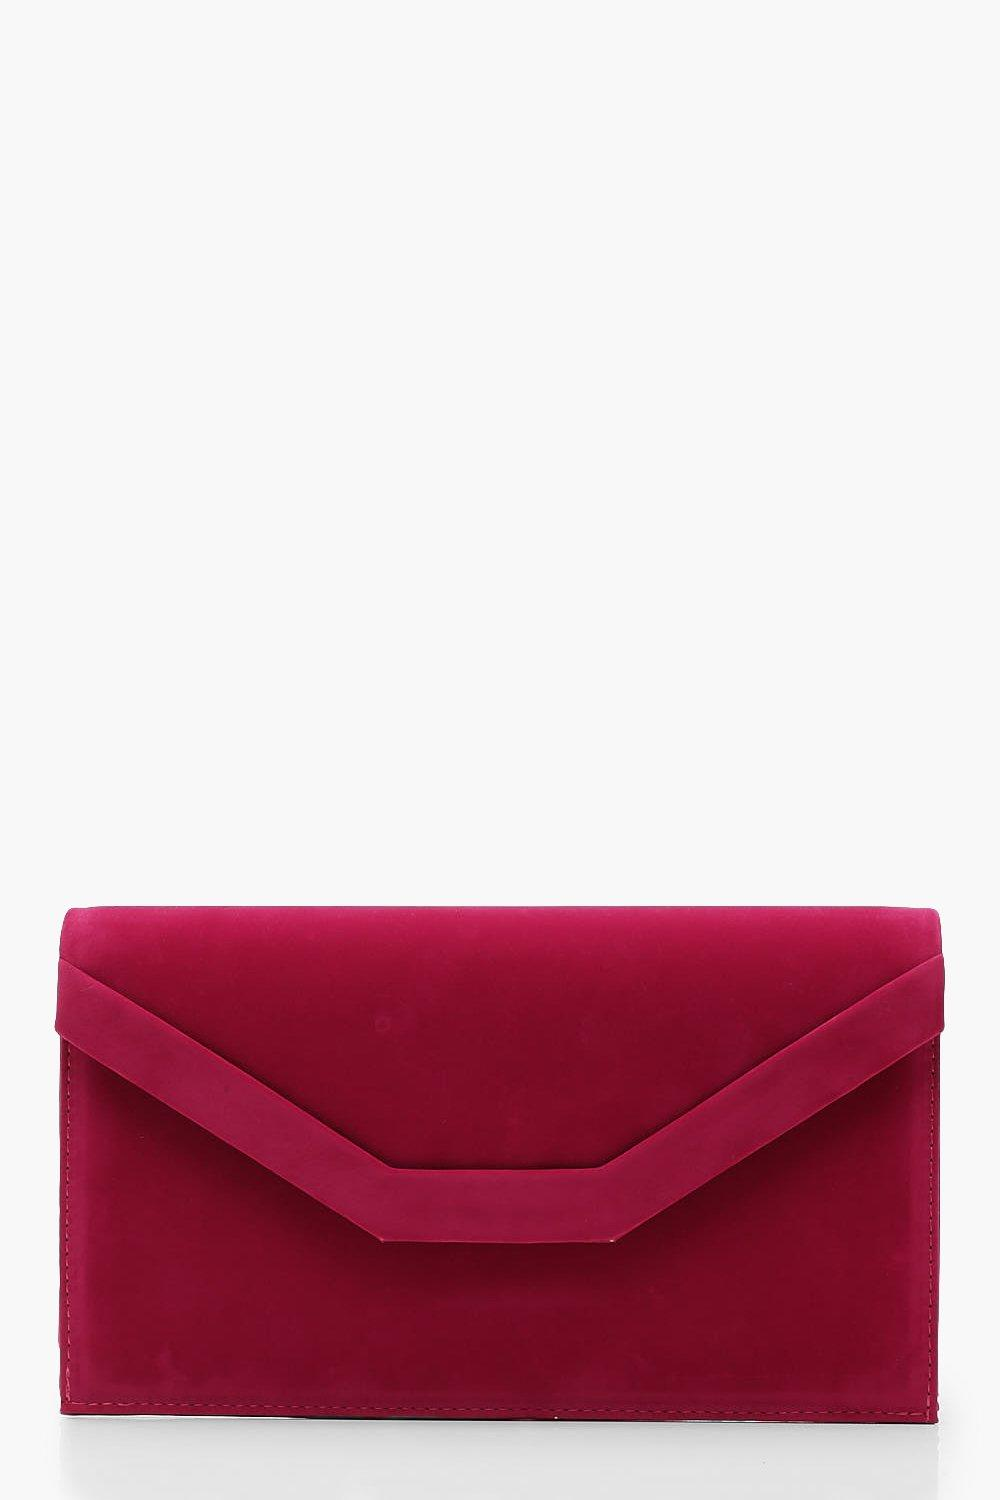 Embossed Envelope Clutch and Chain